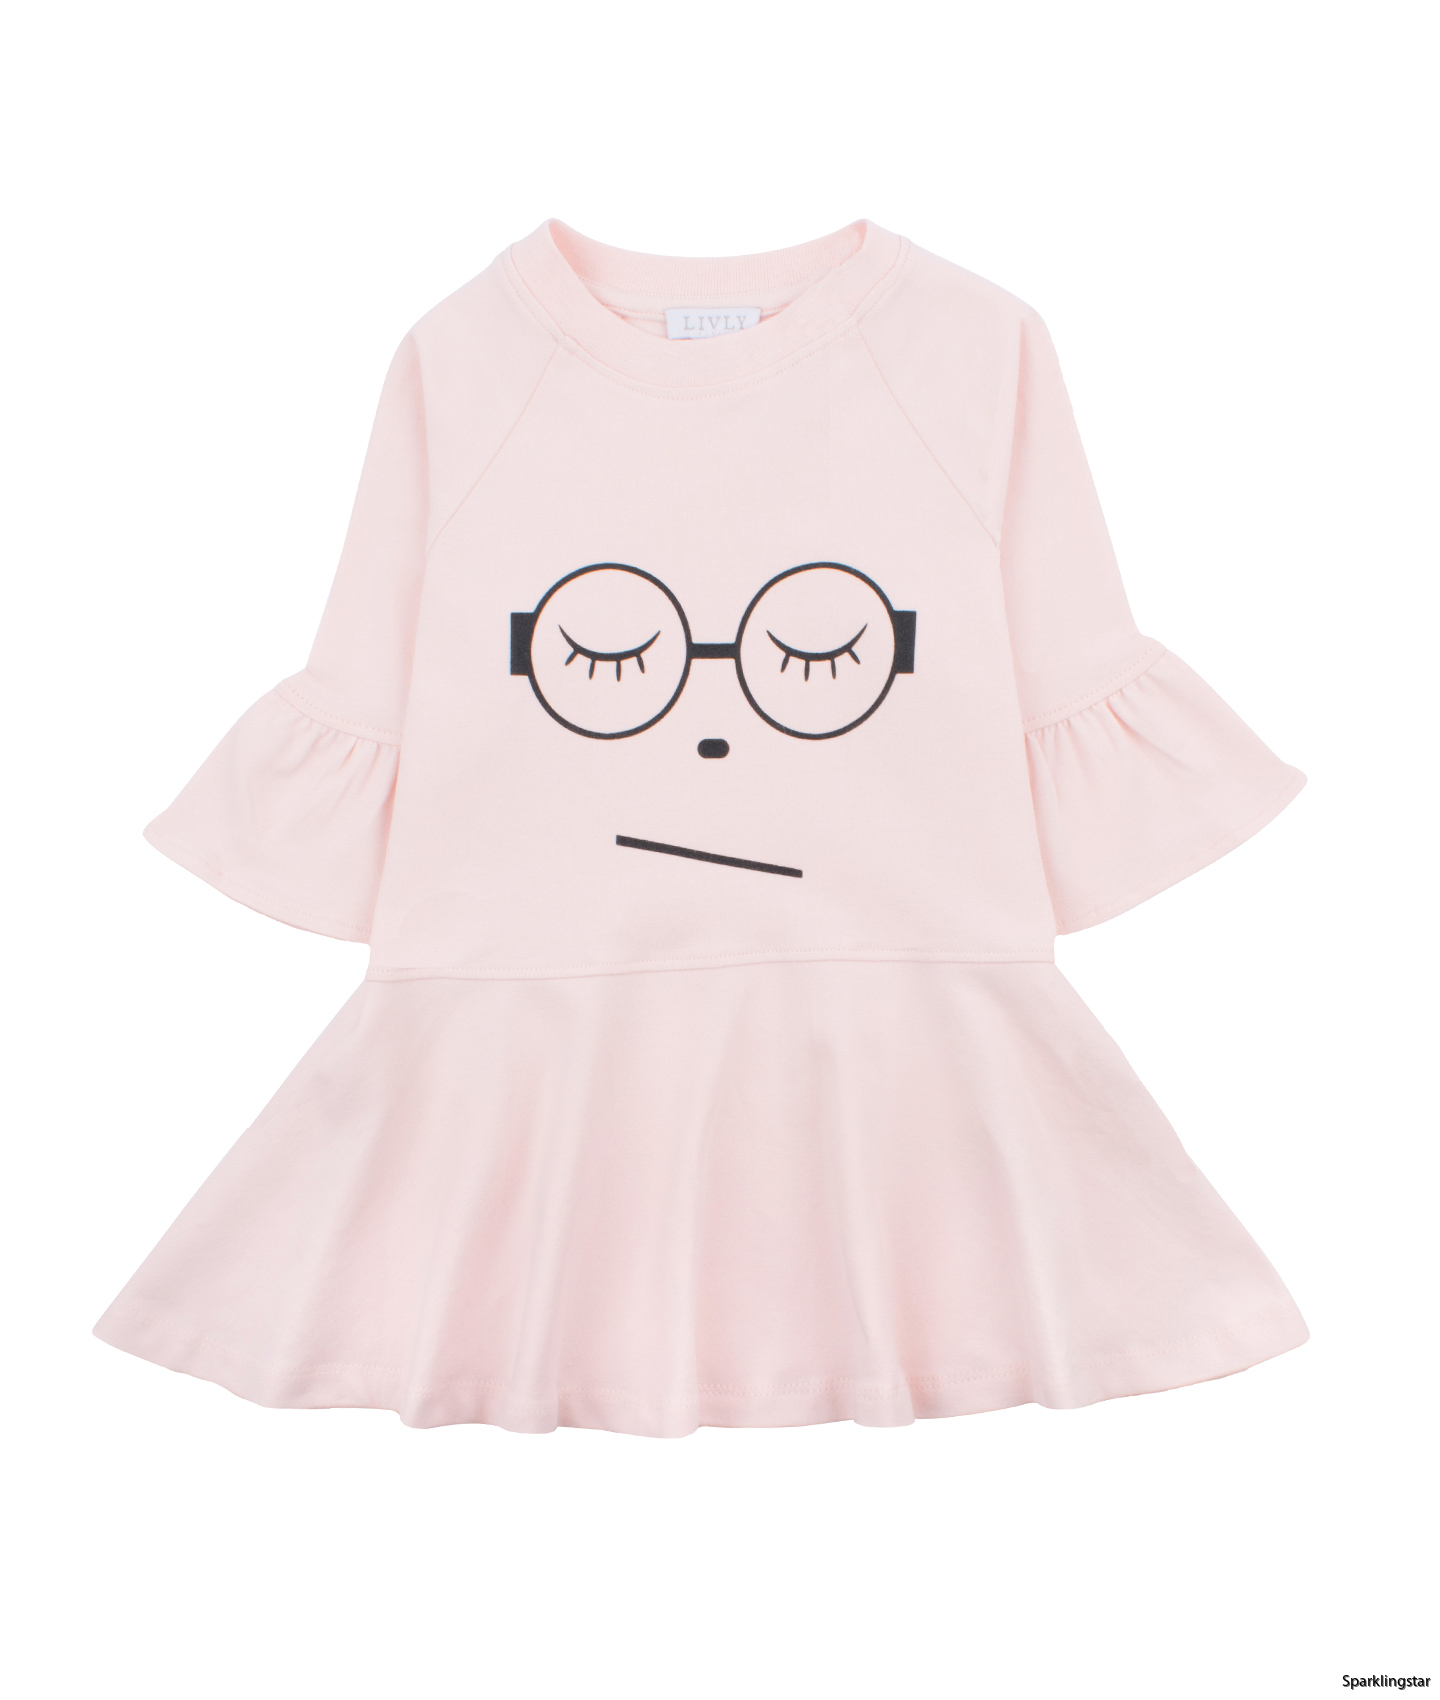 Livly Sleeping Cutie Glasses Ella Dress Baby Pink